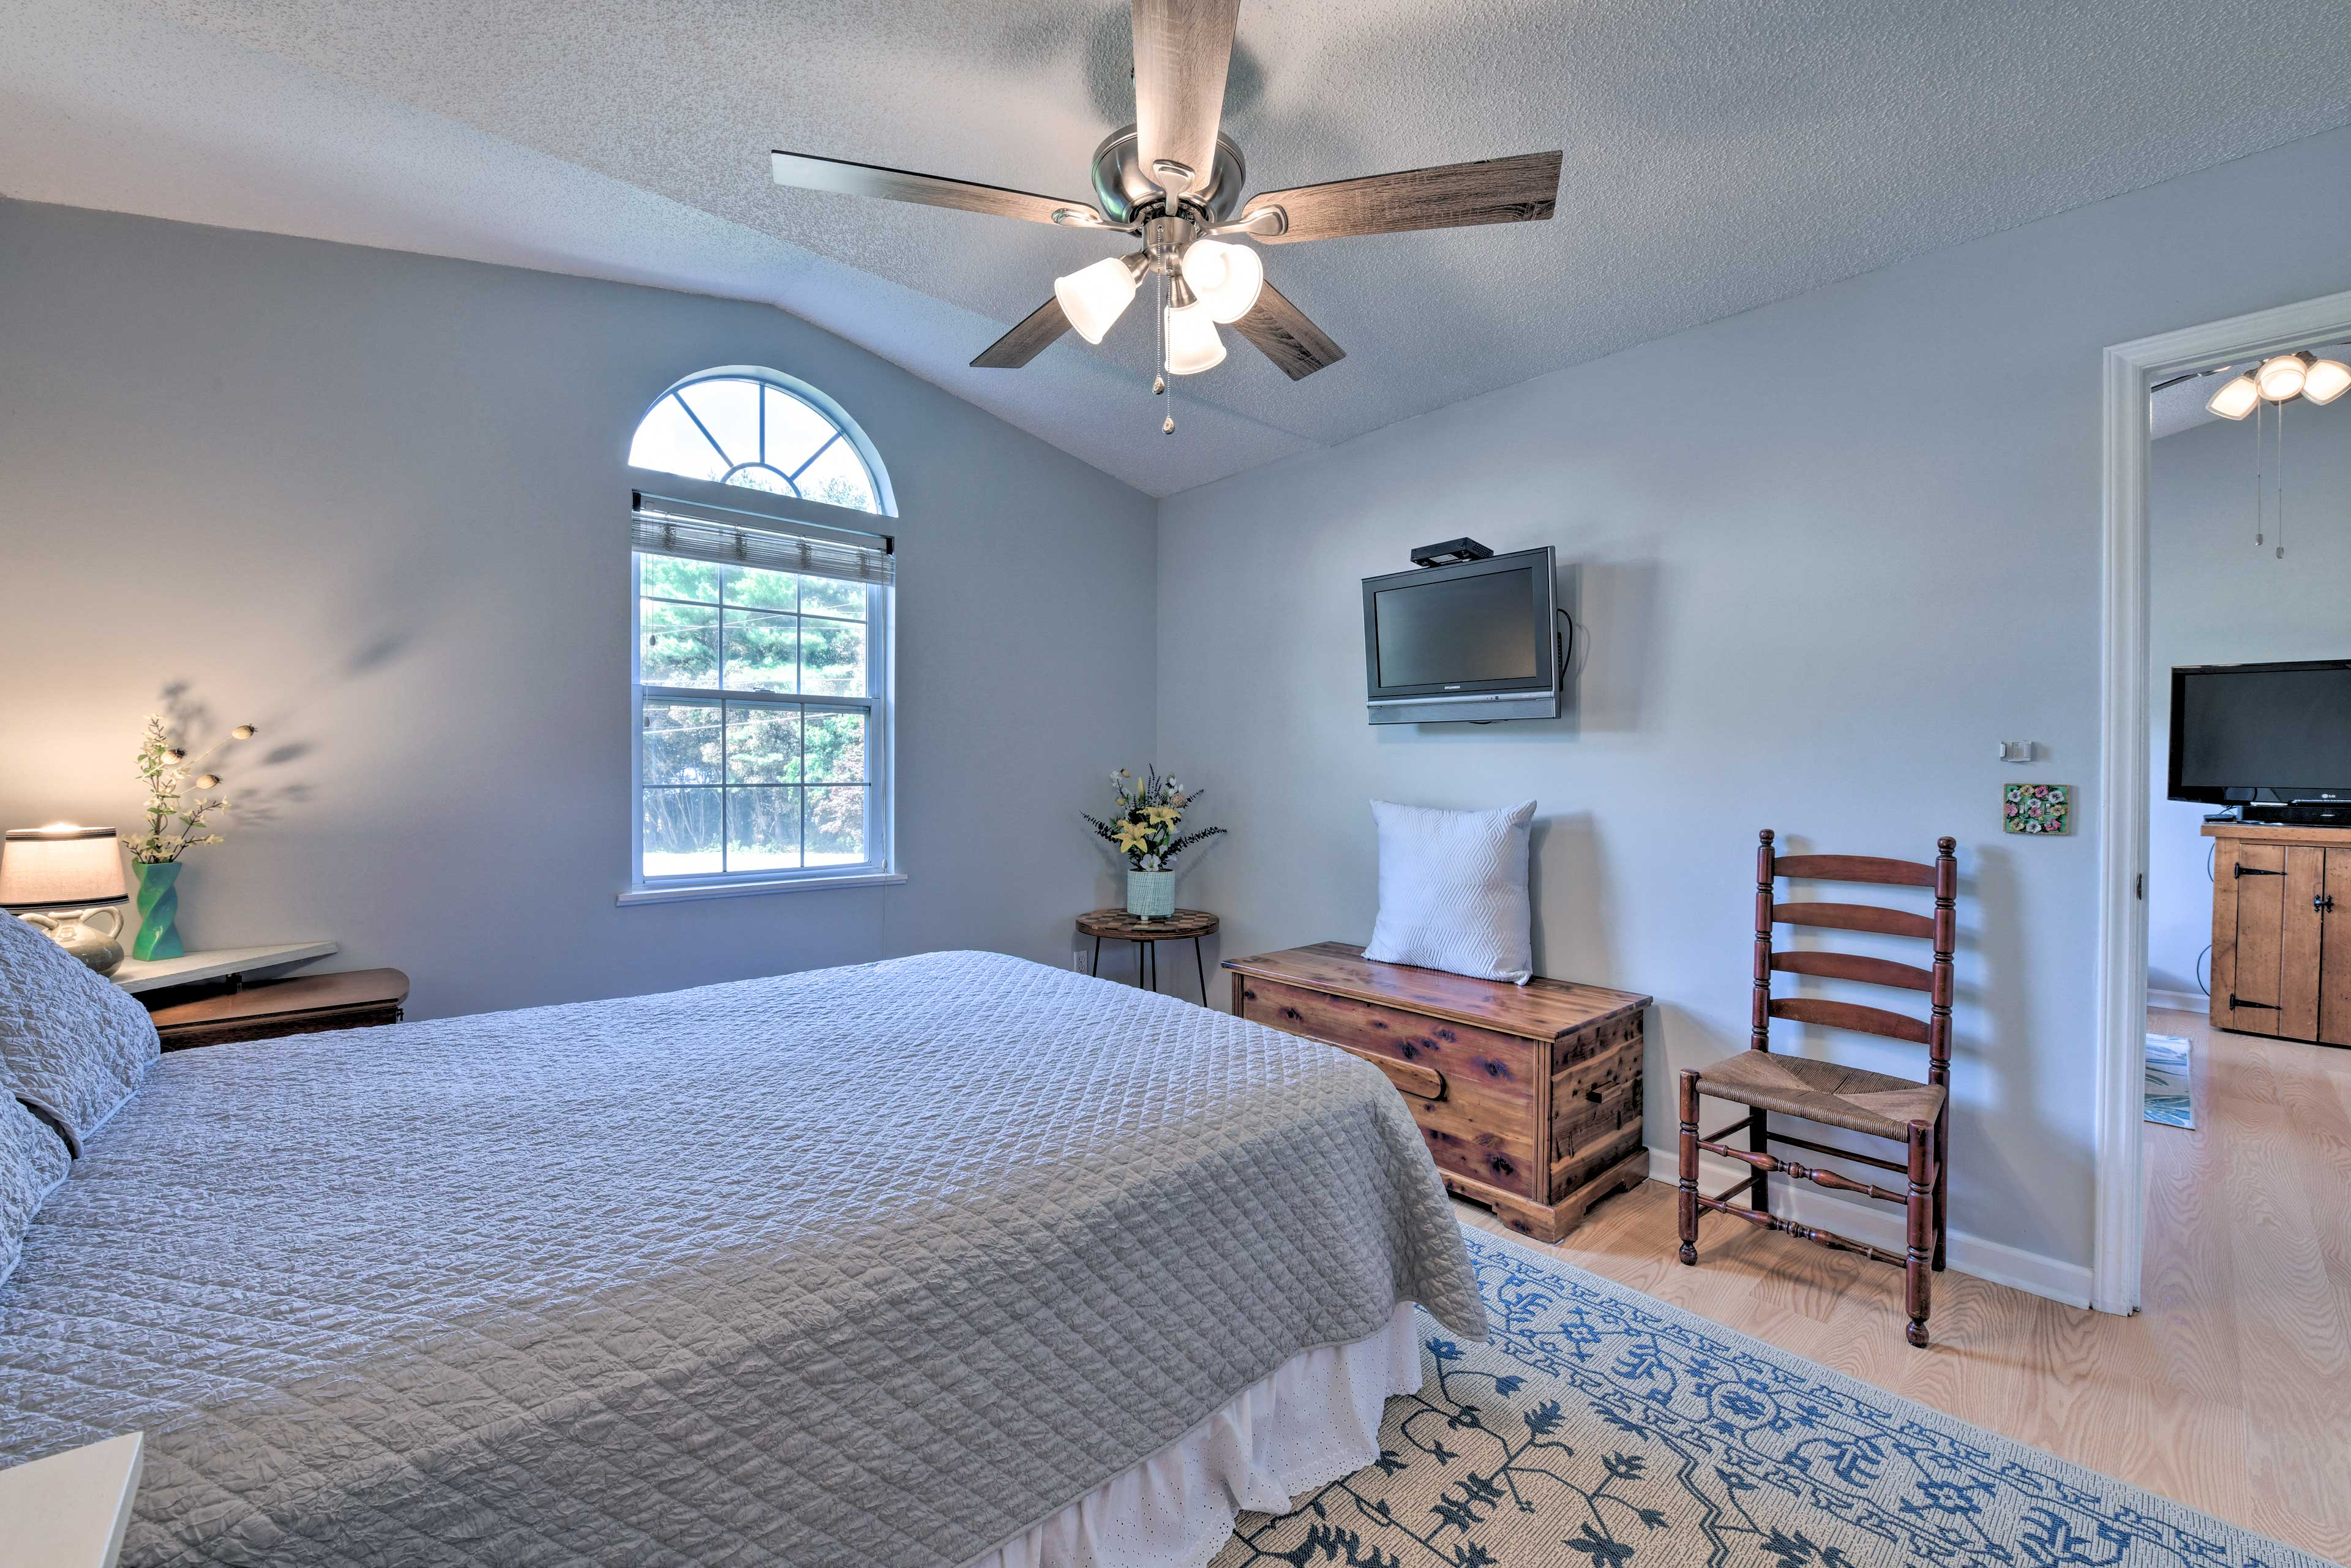 Cozy up in the queen bed while watching the flat-screen TV.